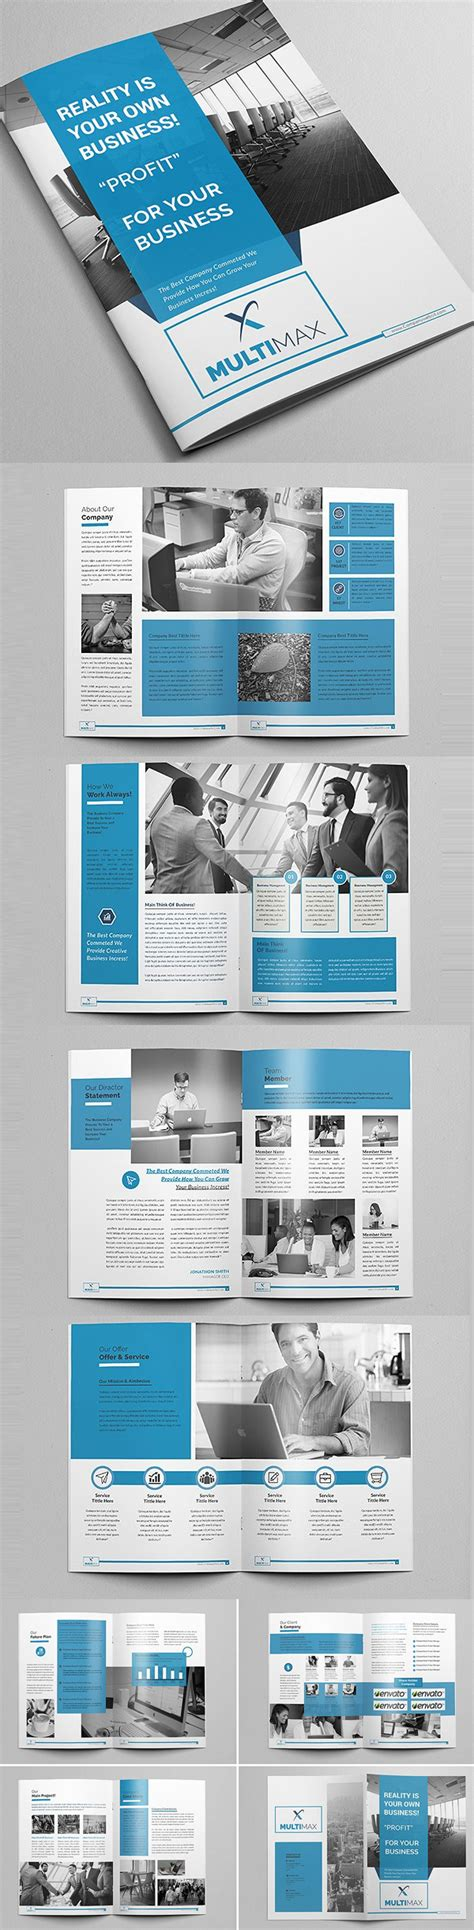 catalog layout design free new brochure templates catalog design design graphic